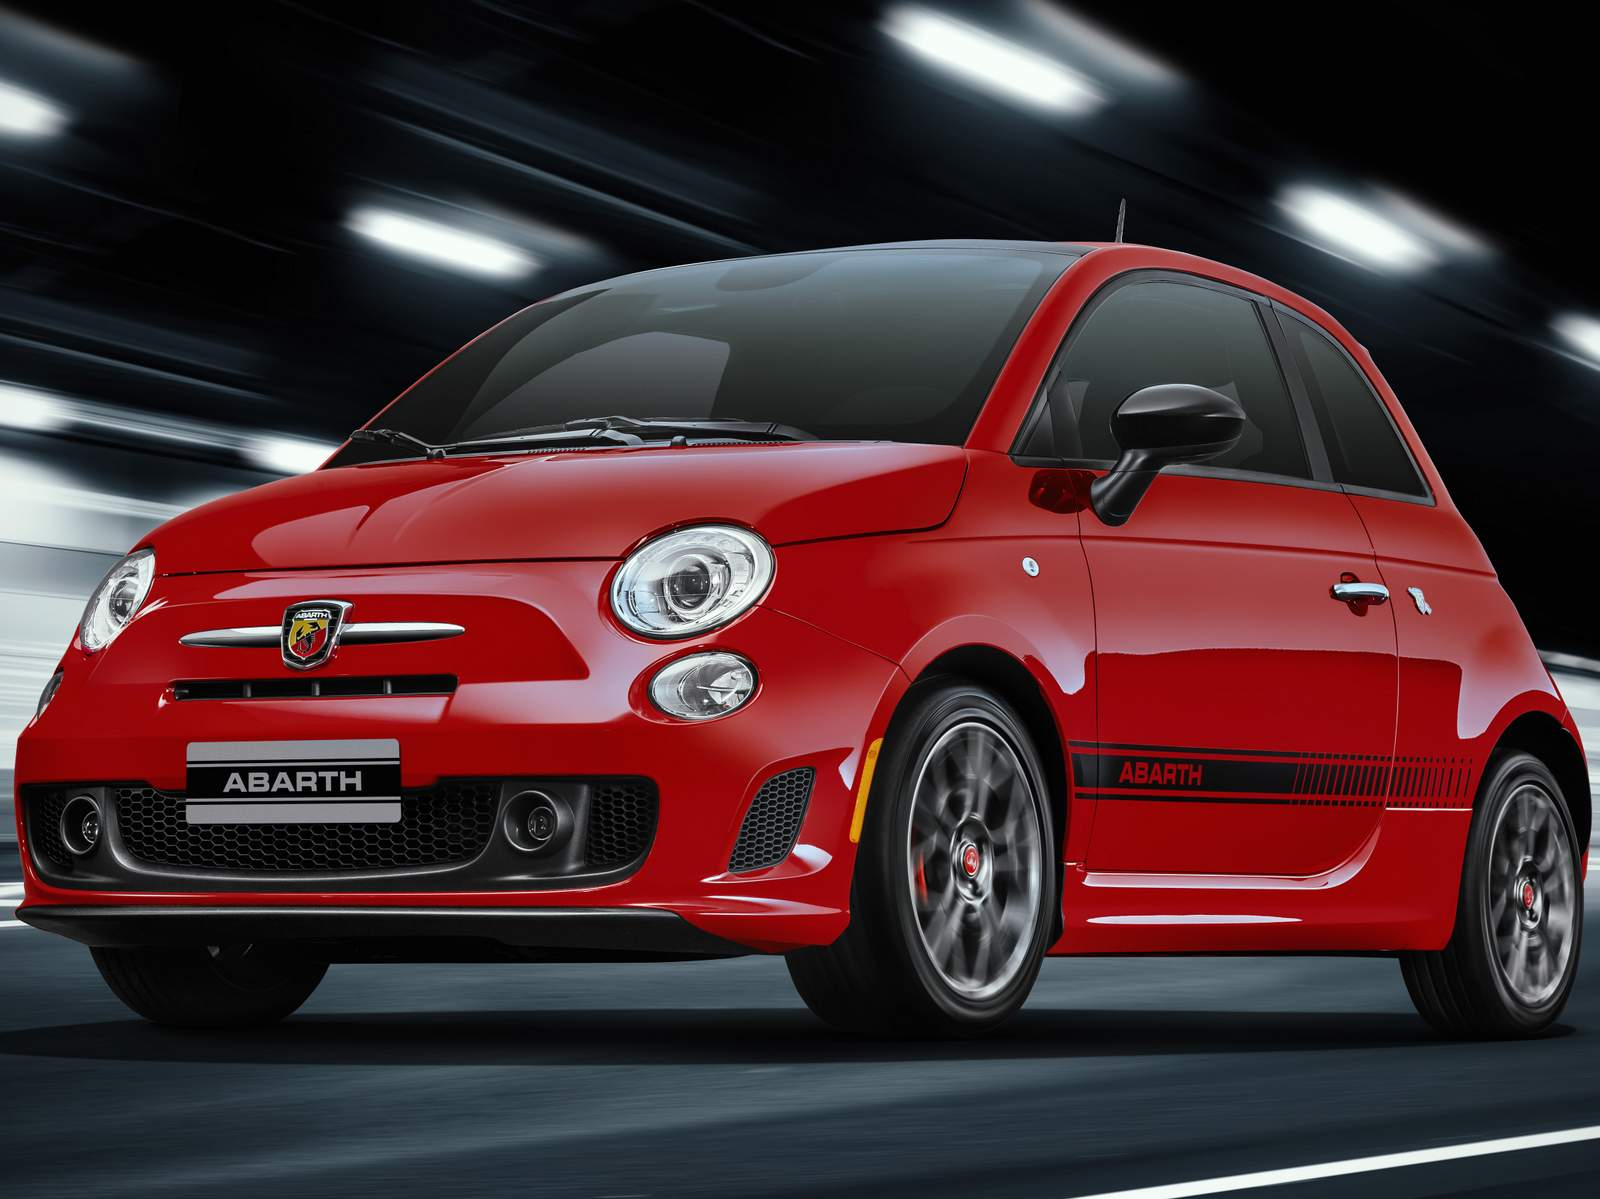 fiat 500 abarth chega s concession rias ainda em 2014 car blog br. Black Bedroom Furniture Sets. Home Design Ideas